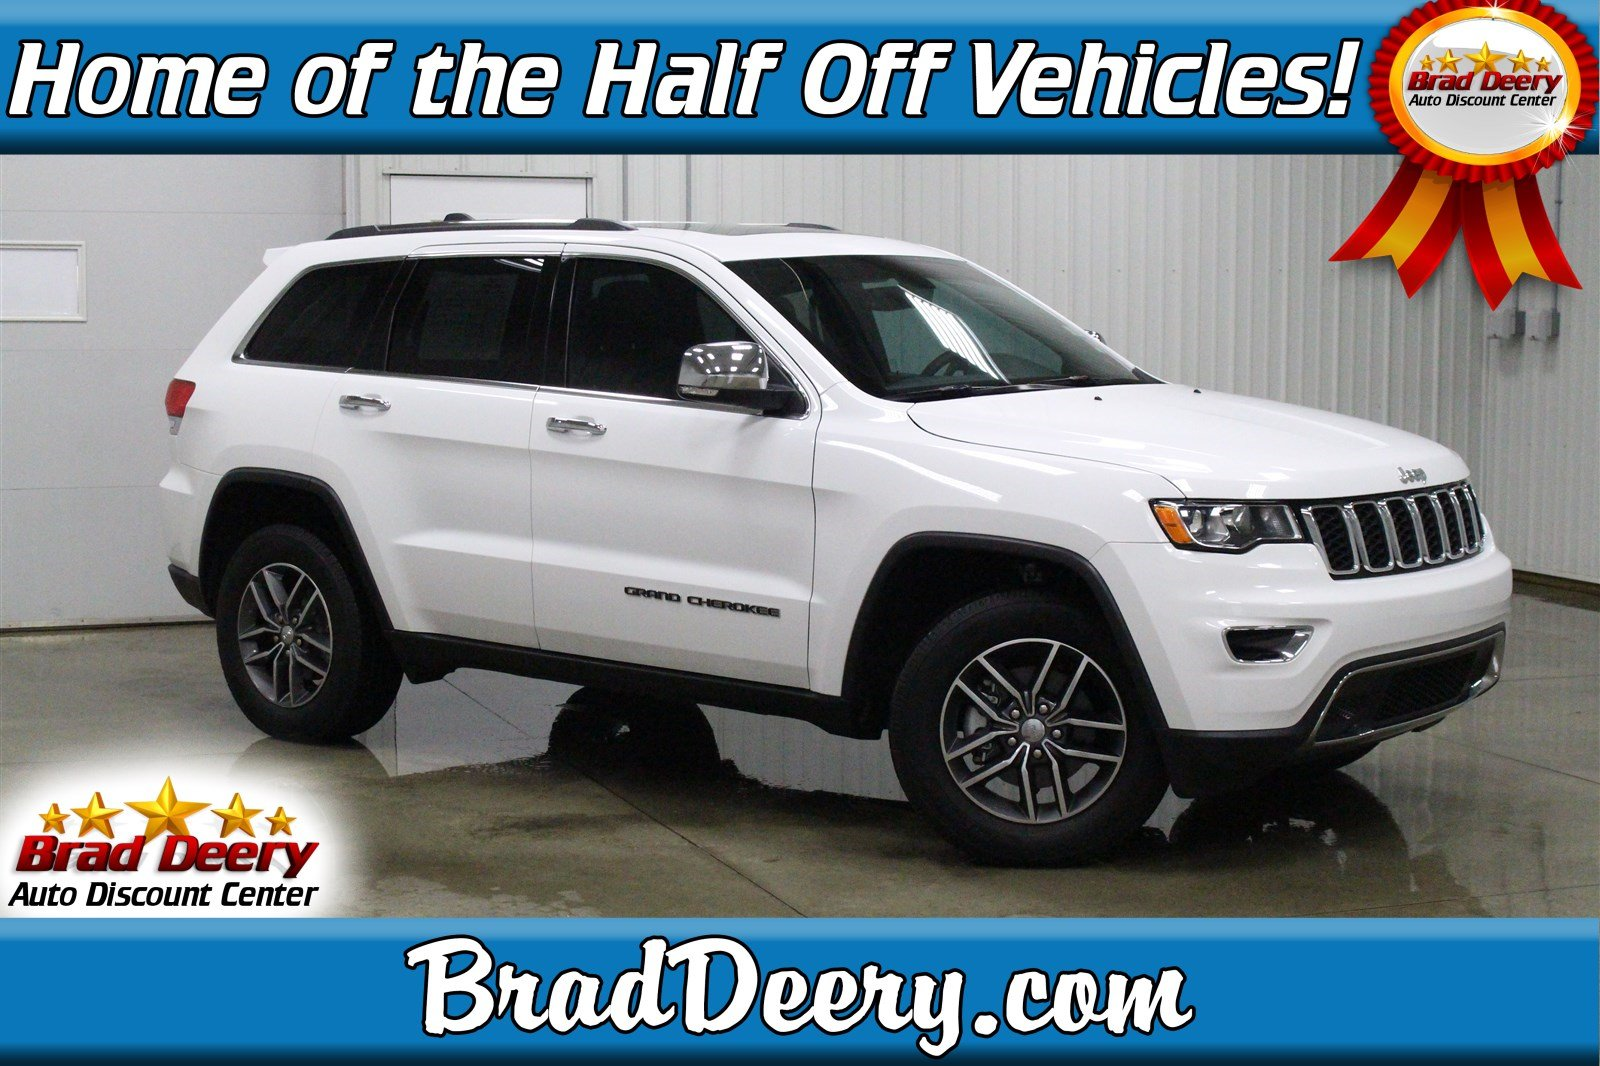 Used 2017 Jeep Grand Cherokee Limited 4X4 w/ Nav, Sunroof, H. Leather & R. Start Sport Utility in Maquoketa